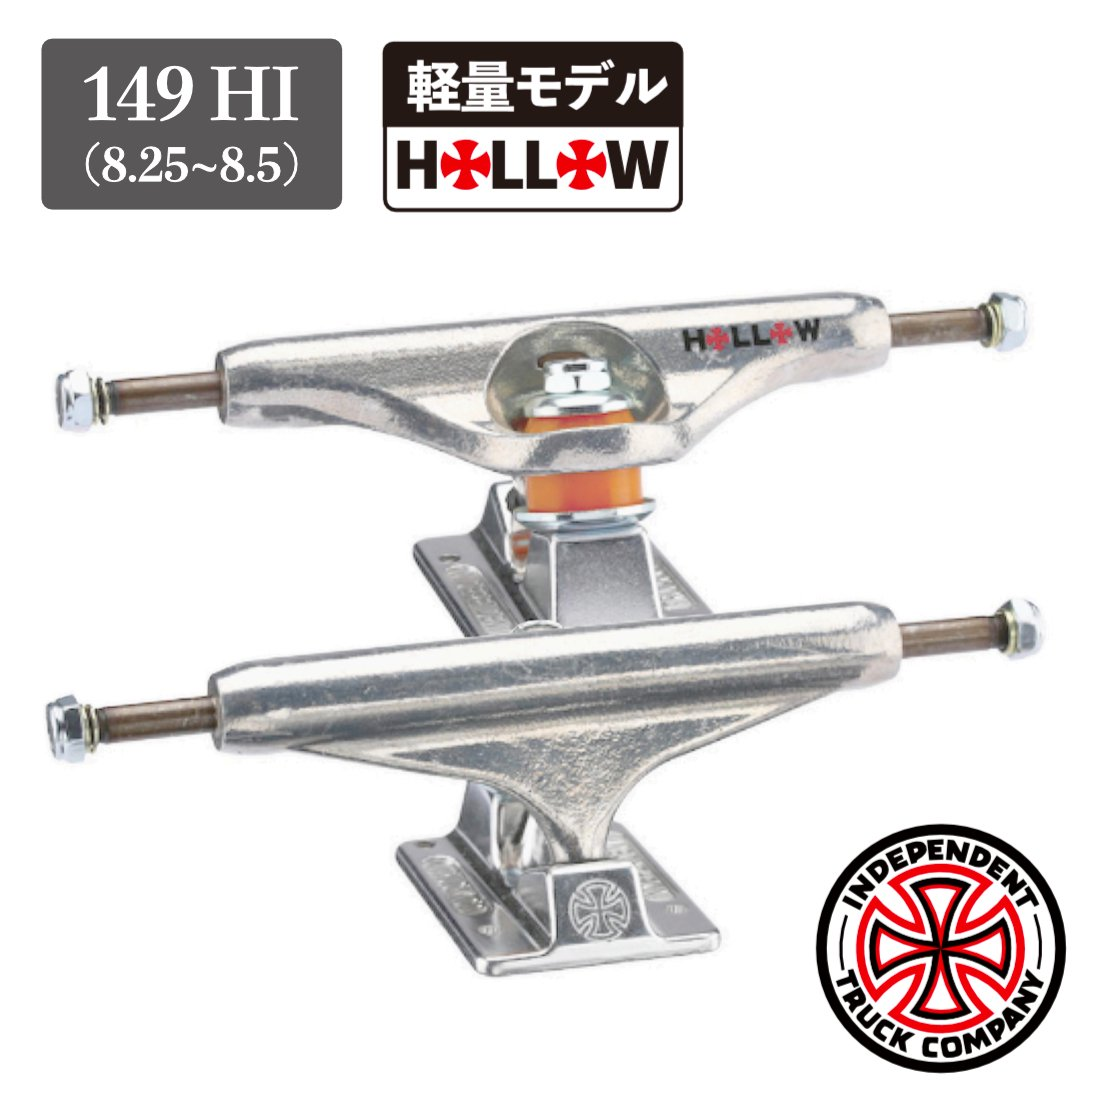 【INDEPENDENT】 Forged Hollow Standard -149